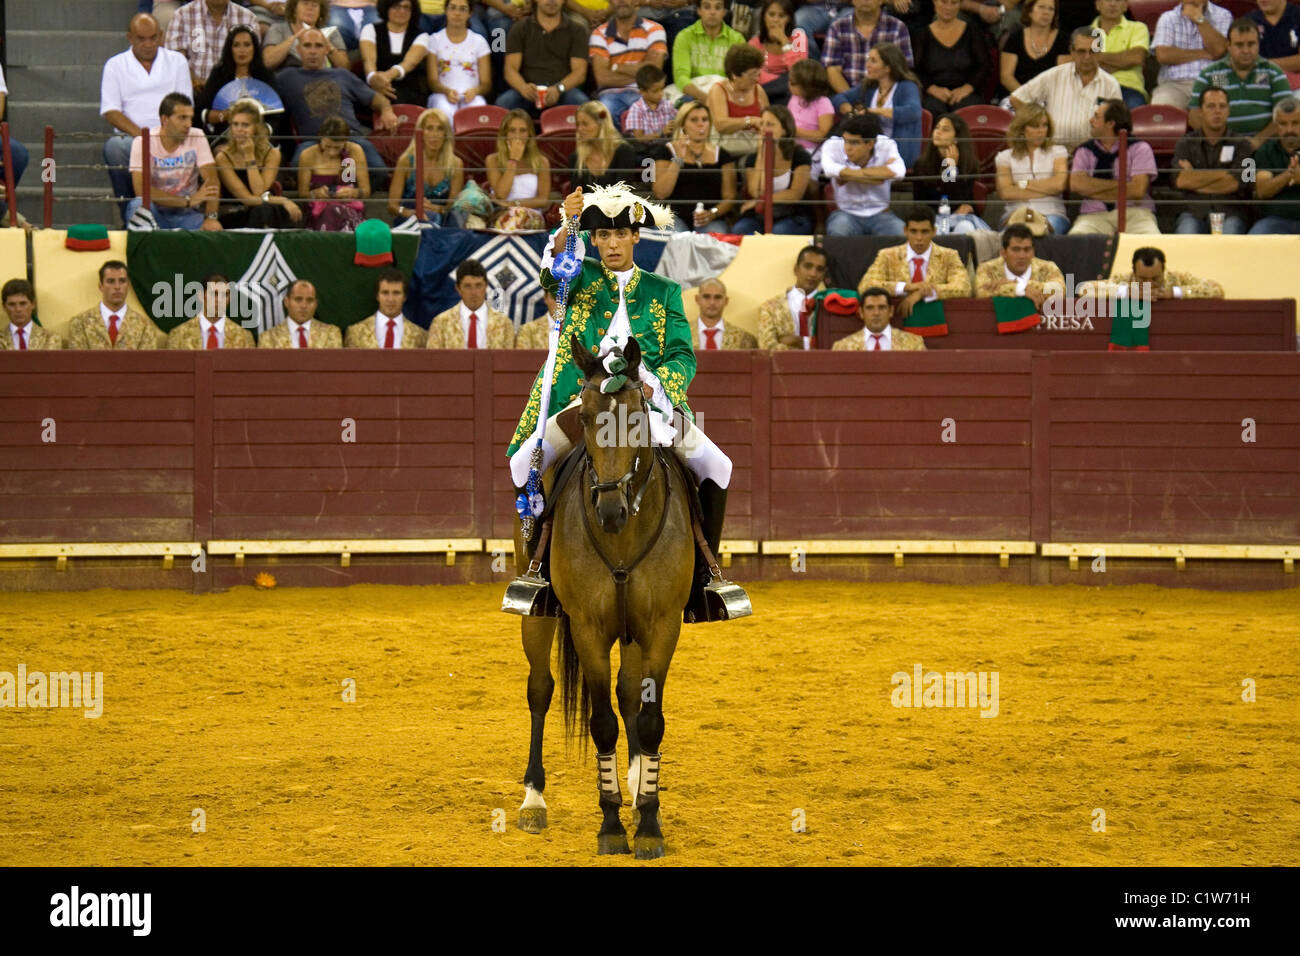 A skilled horseman (Cavaleiro) during a Portuguese style bullfight at the Campo Pequeno in Lisbon, Portugal. - Stock Image